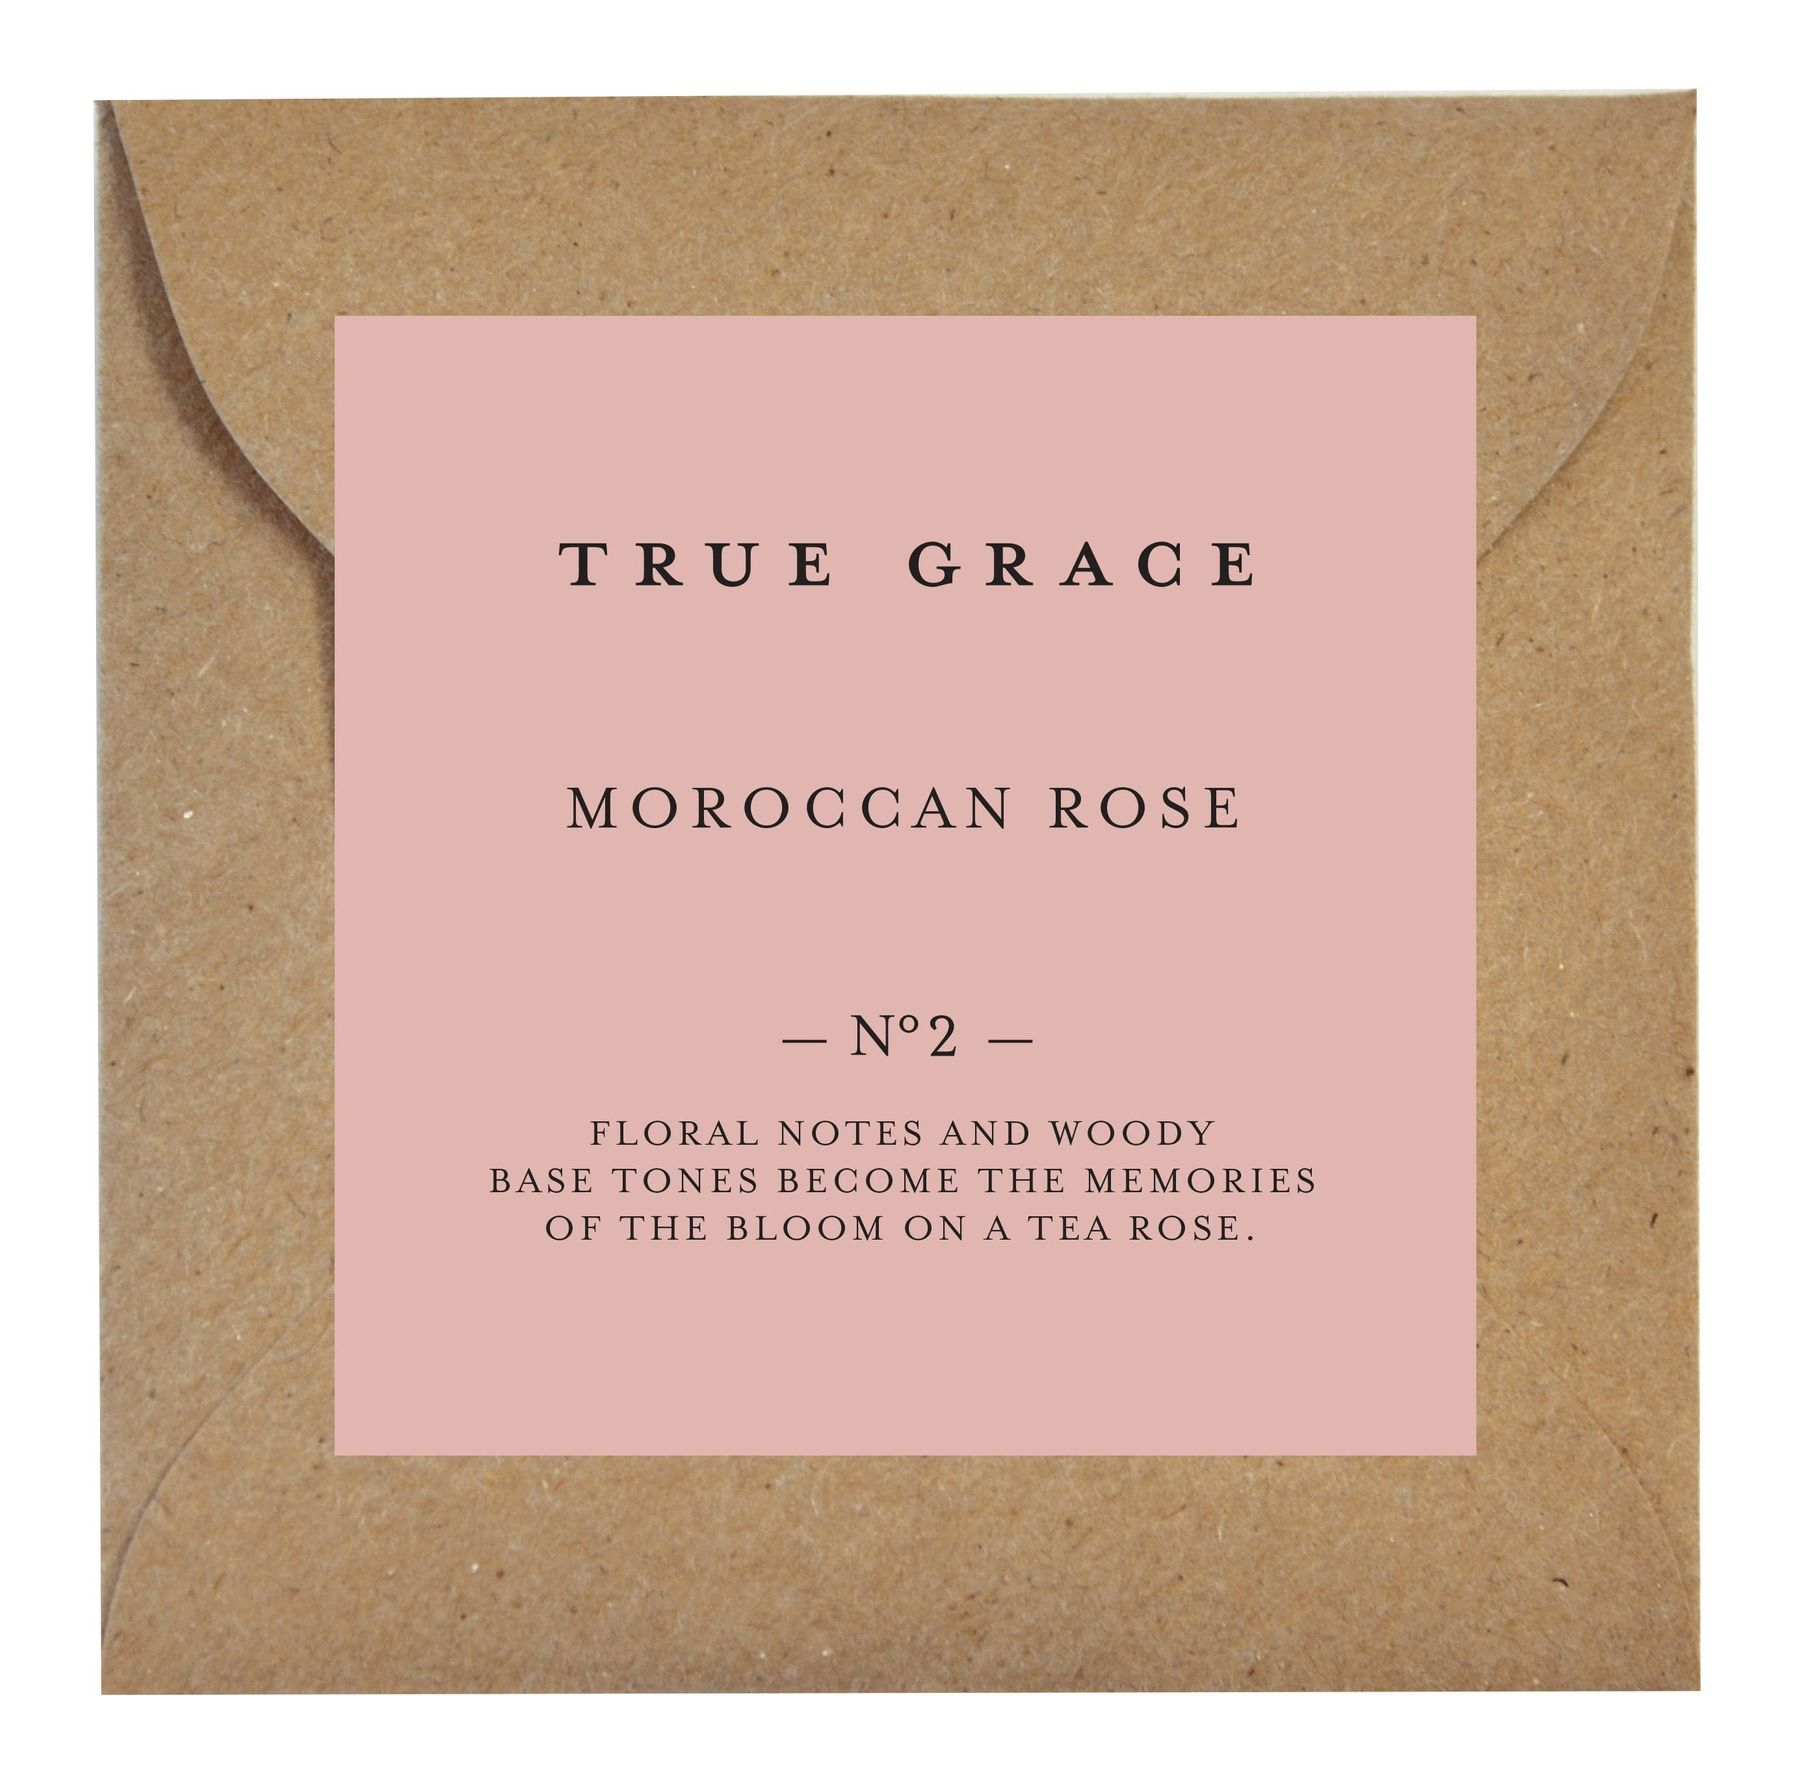 Ароматическое саше True Grace SCENTED LEAF № 02 Moroccan Rose VILLAGE арт: SLE-V-02